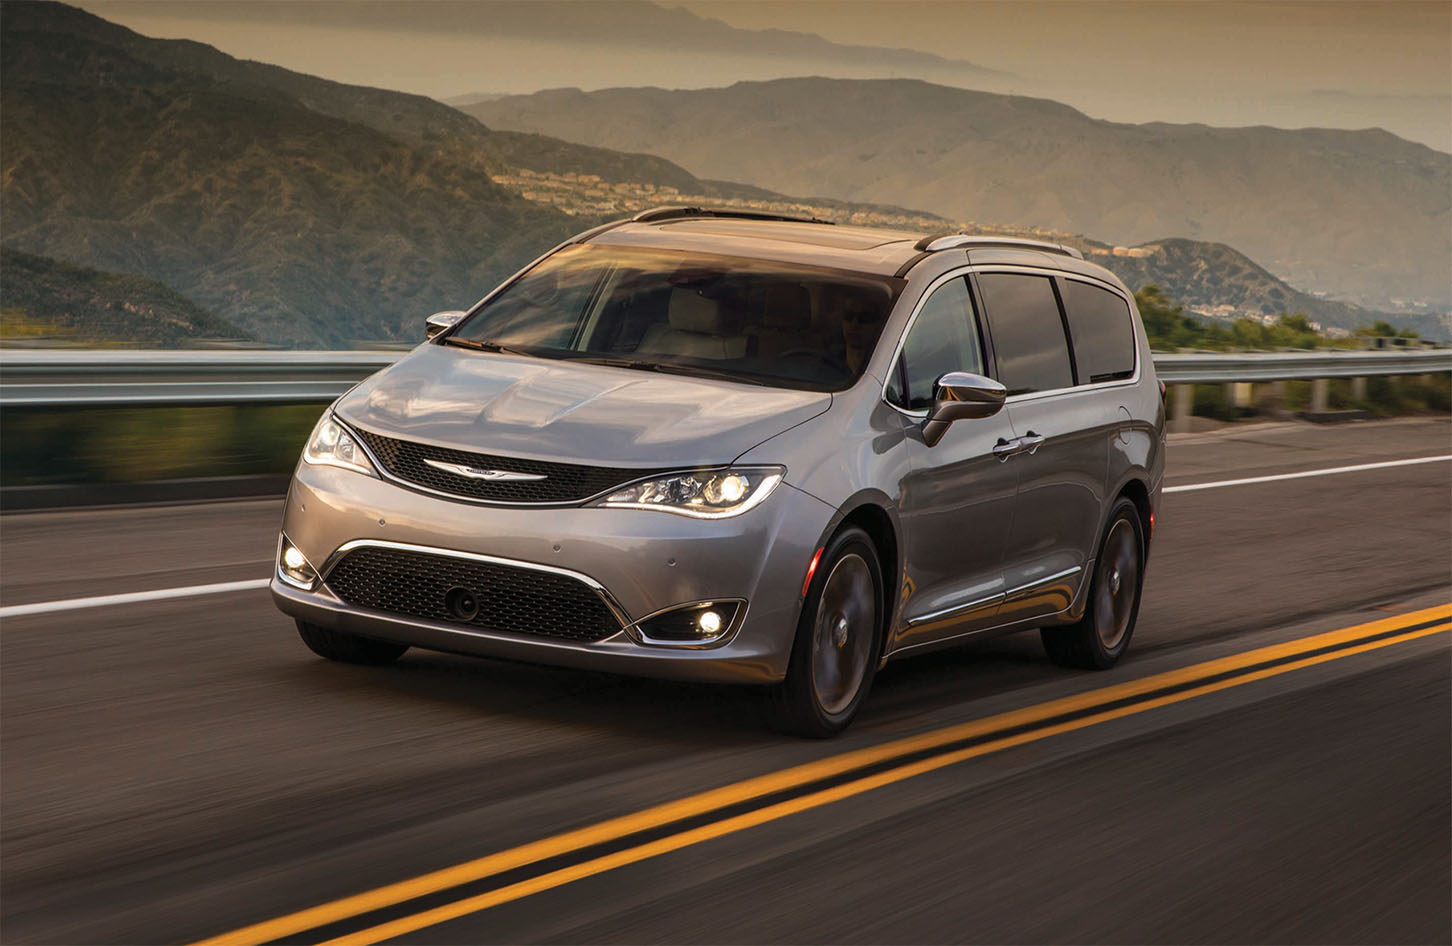 New Chrysler available in North Aurora, IL at River Front Chrysler Dodge Jeep Ram